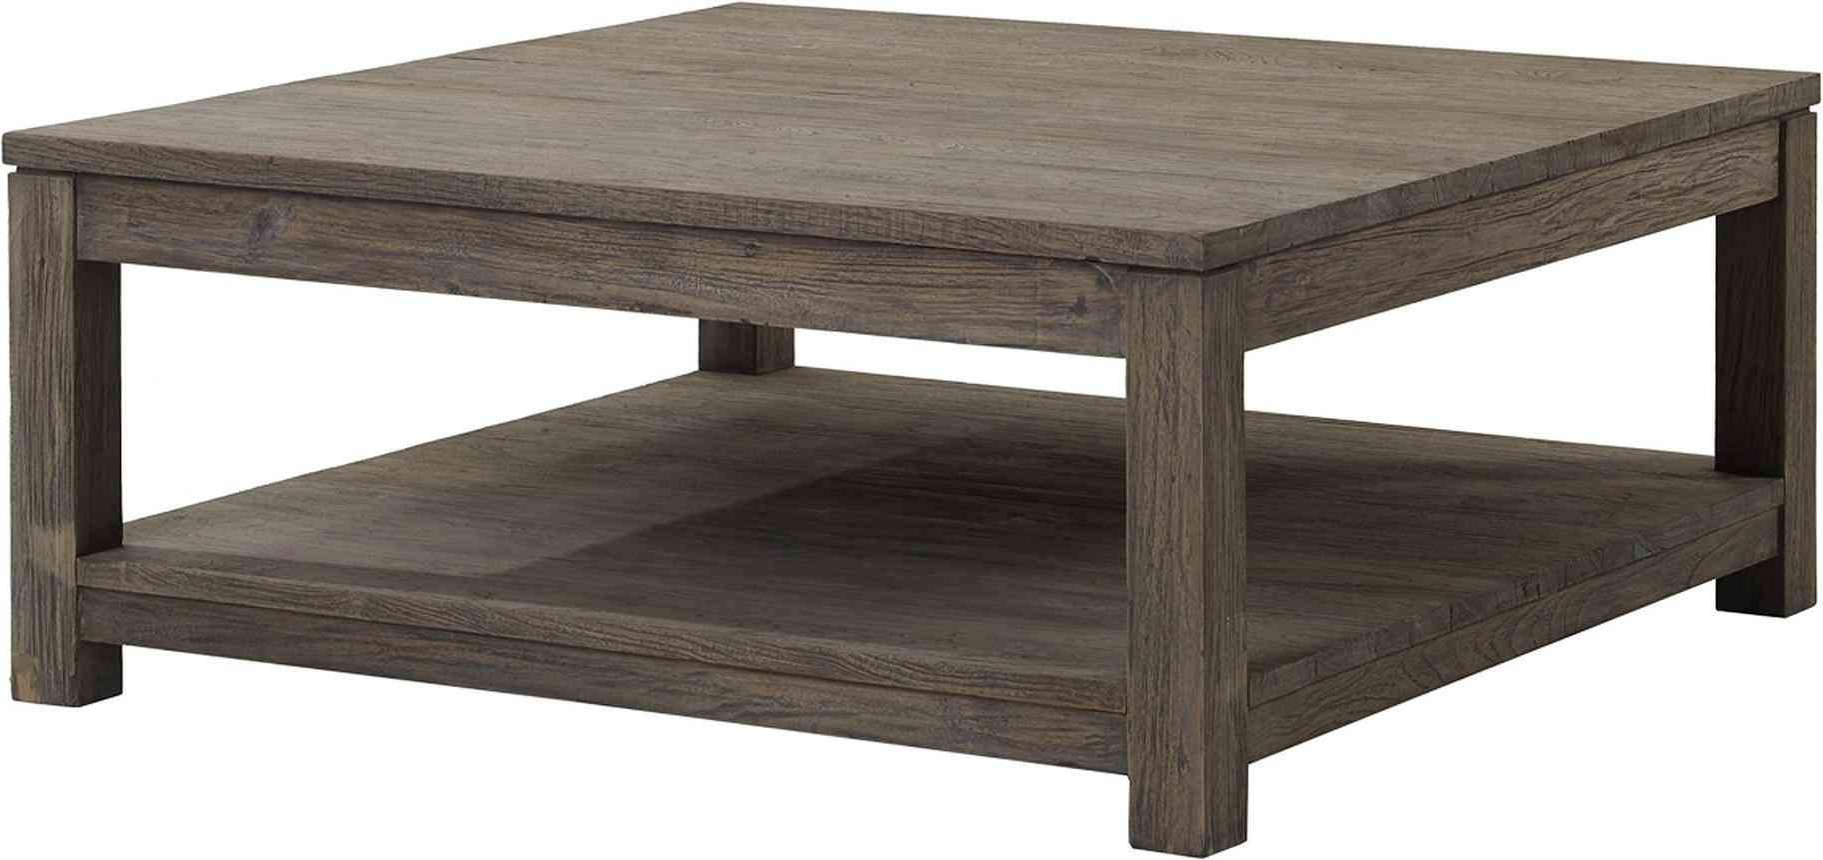 Latest Big Square Coffee Tables Intended For Coffee Tables : Round Leather Storage Ottoman Oversized Coffee (View 6 of 20)